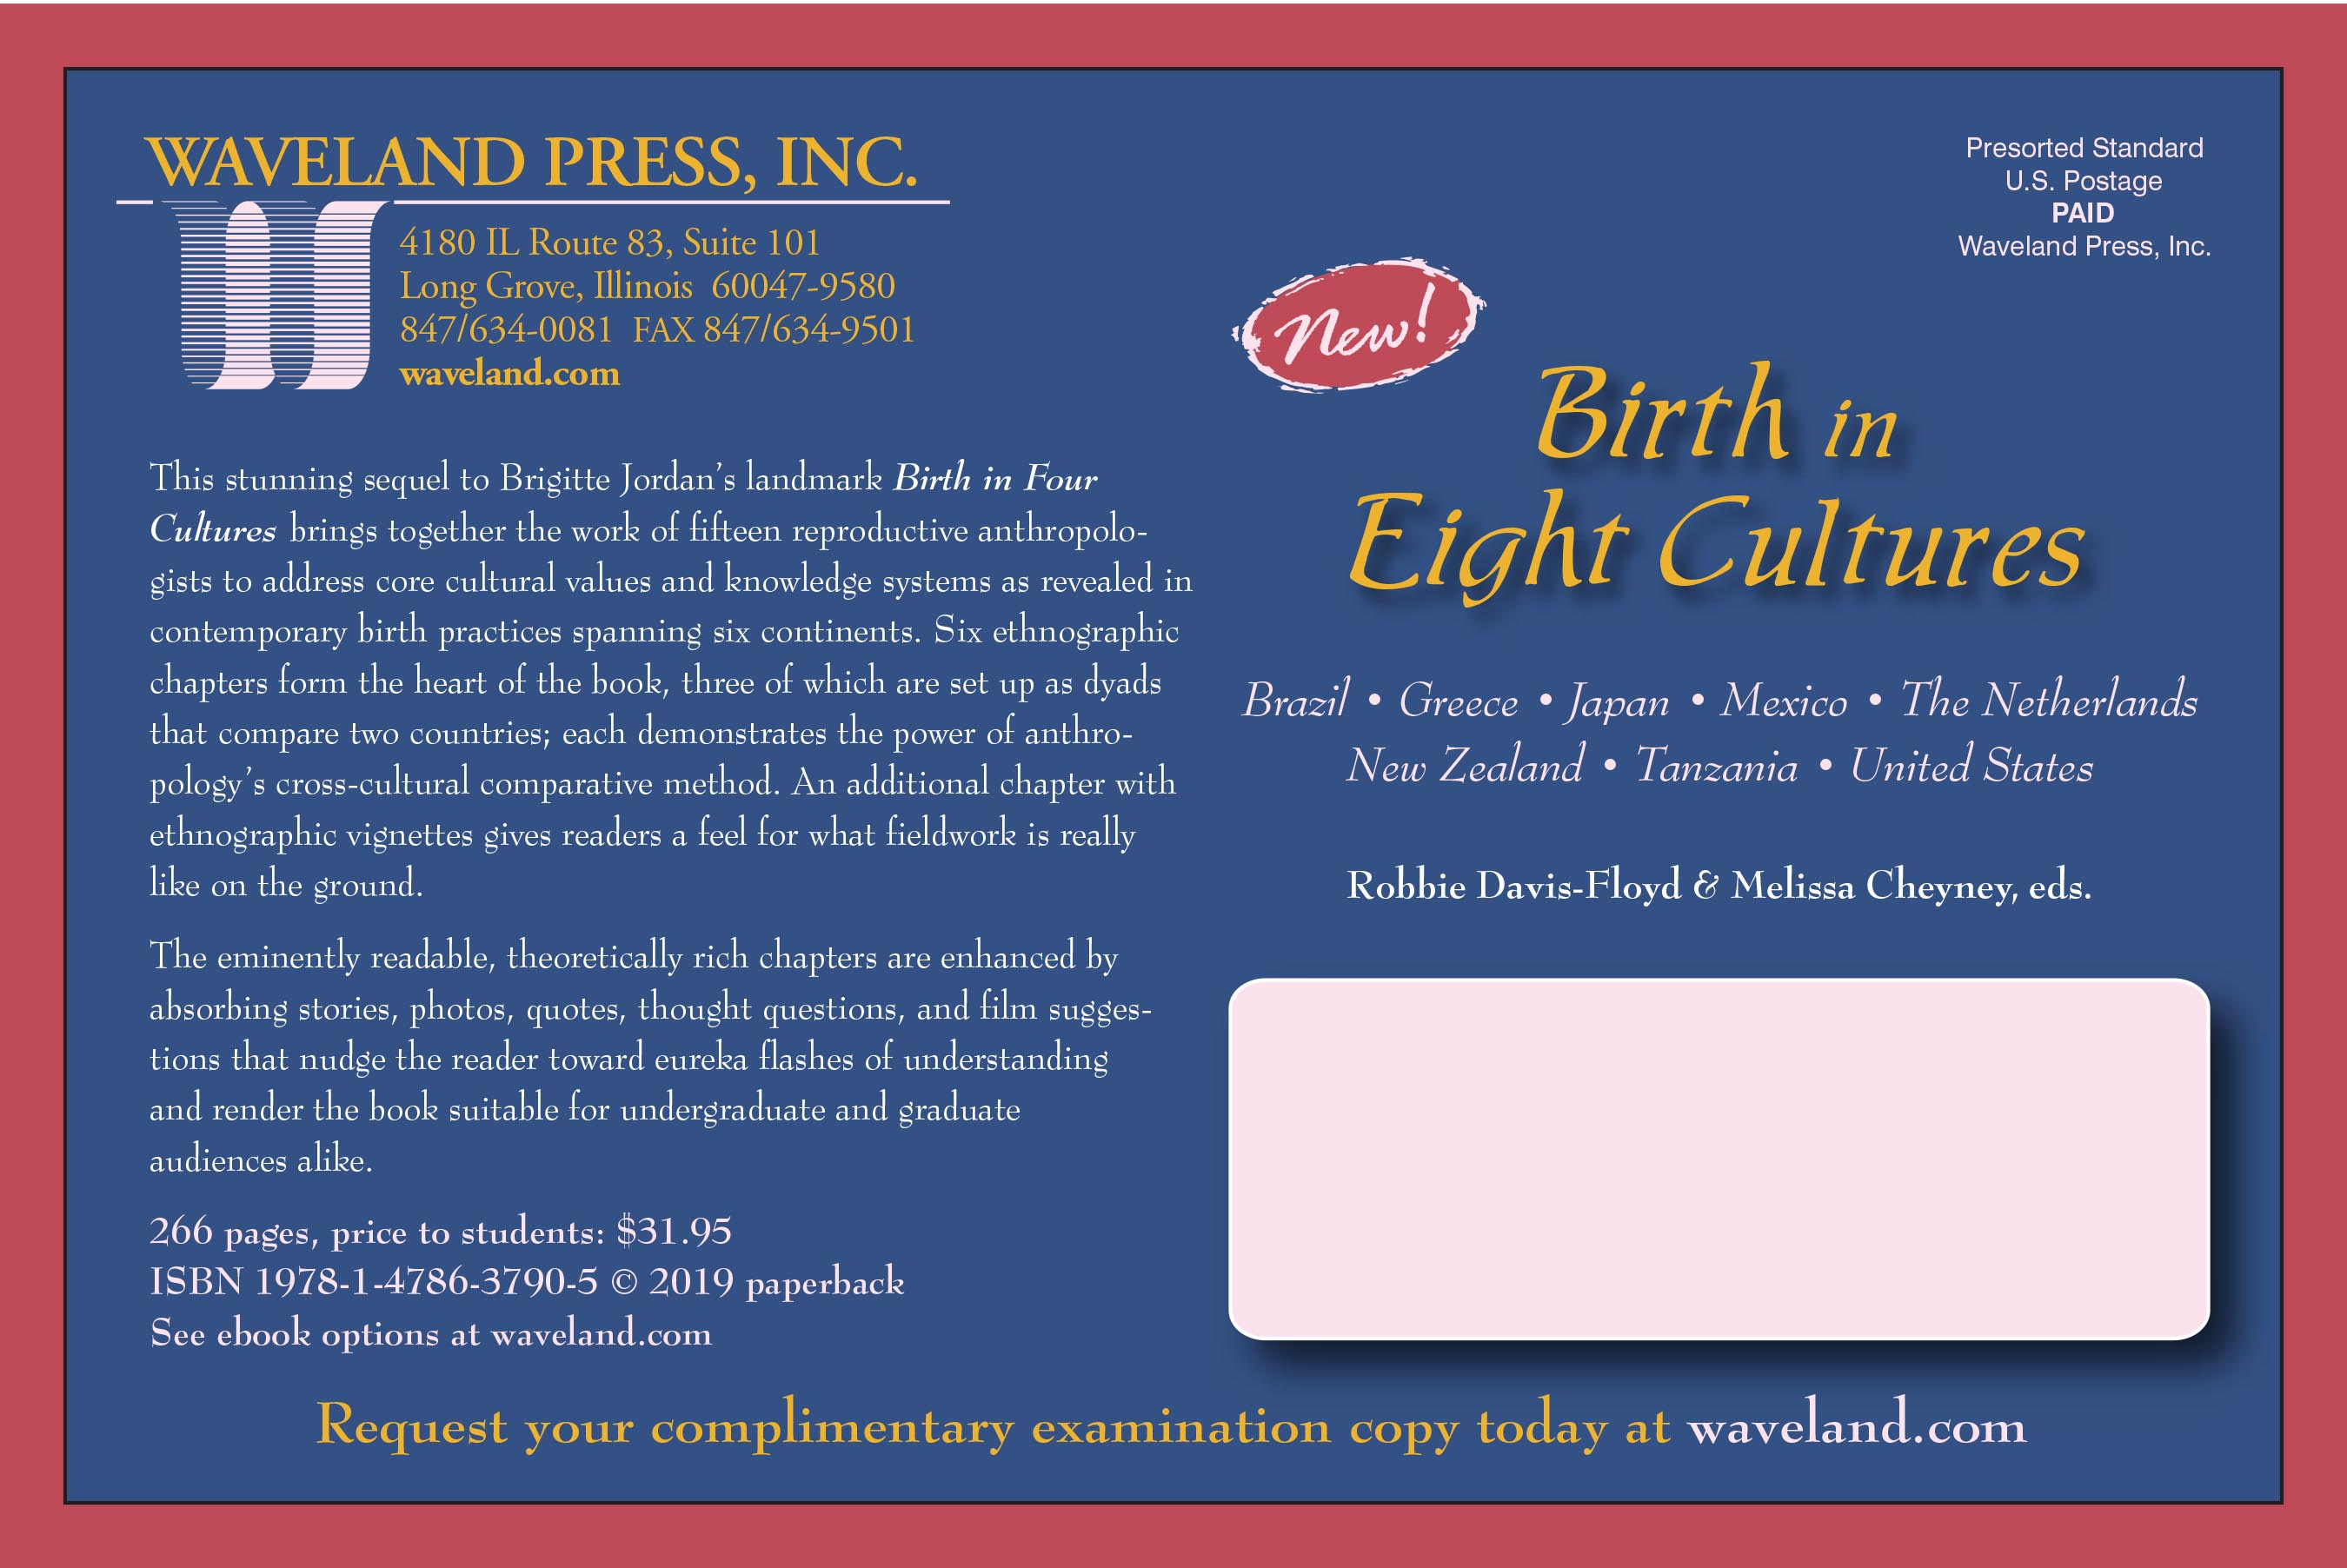 birth in 8 cultures order form